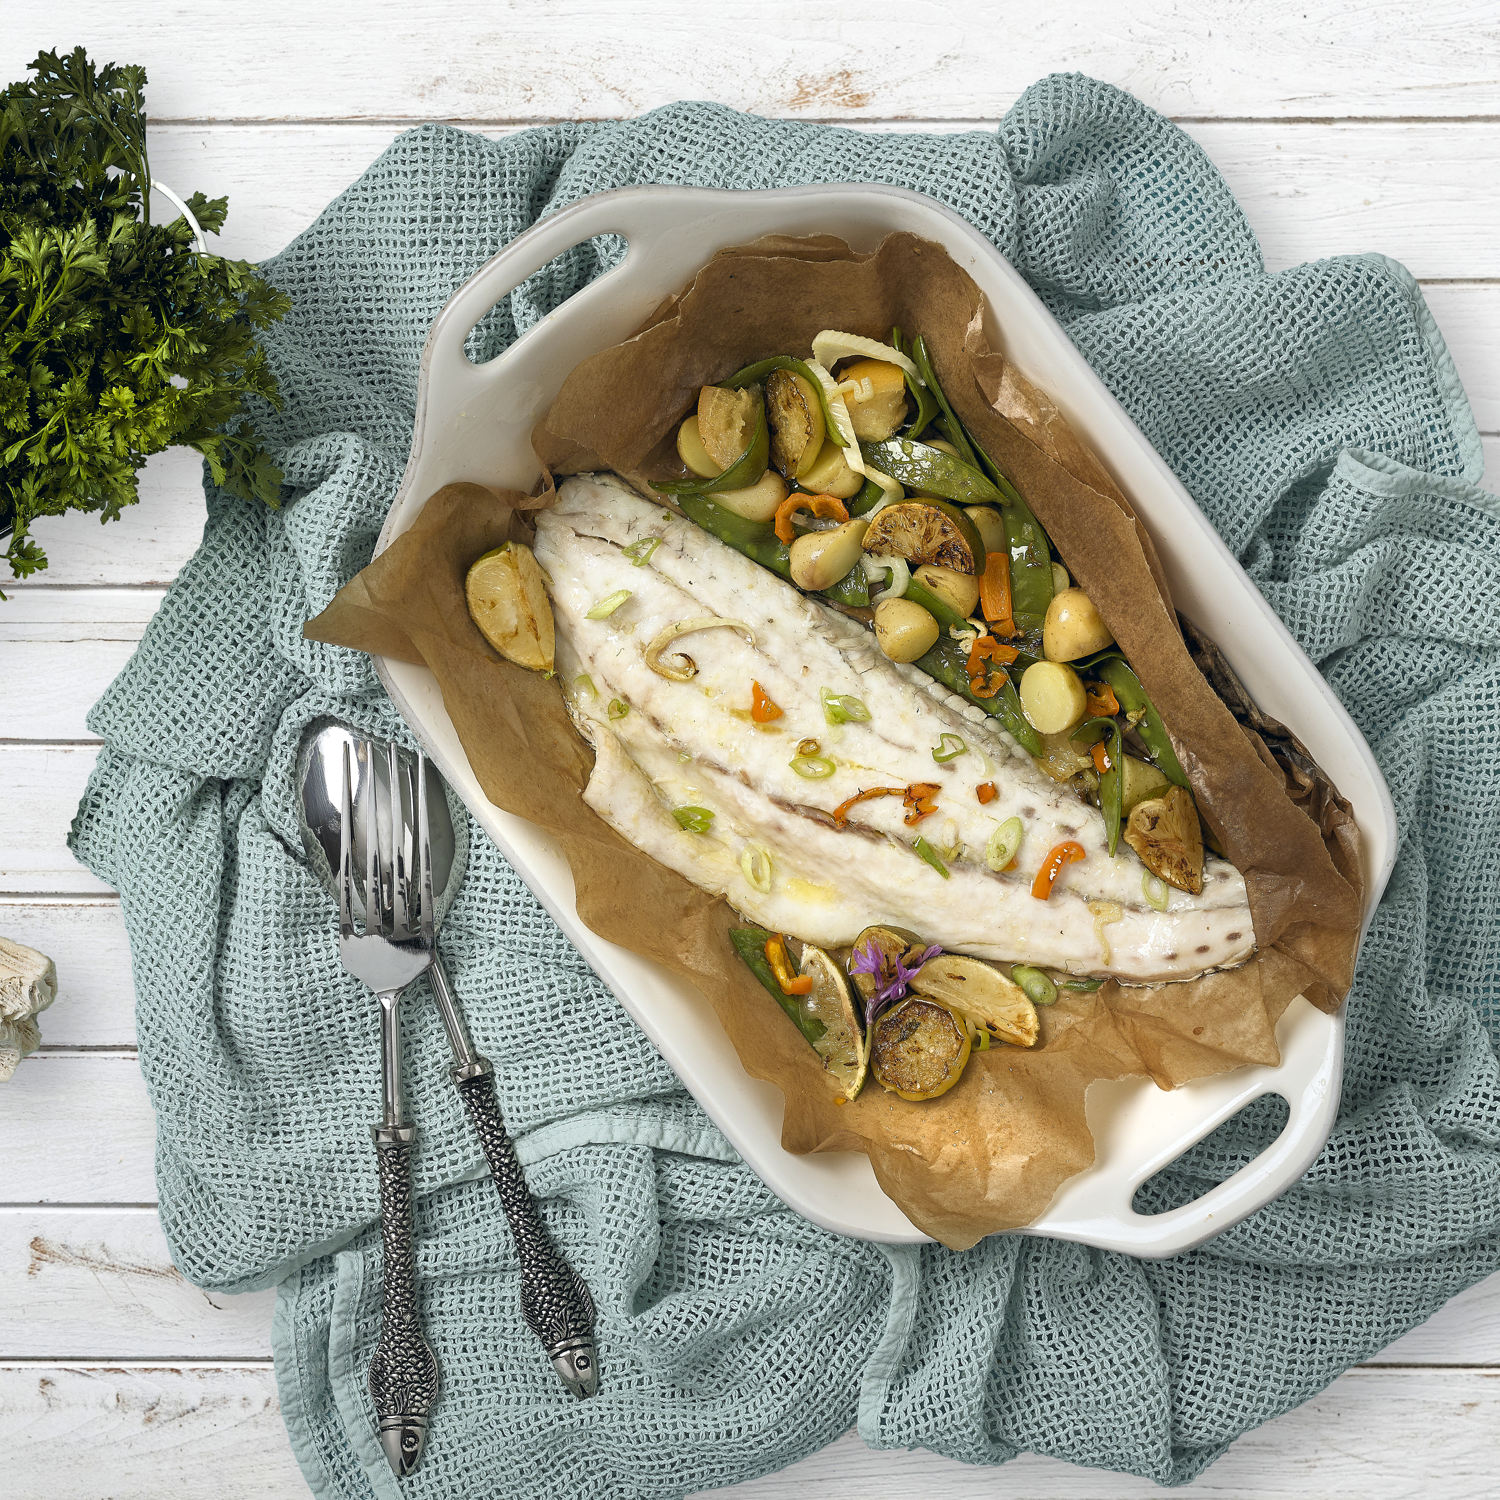 BAKED FILLET OF AVRAMAR CORVINA WITH VEGETABLES